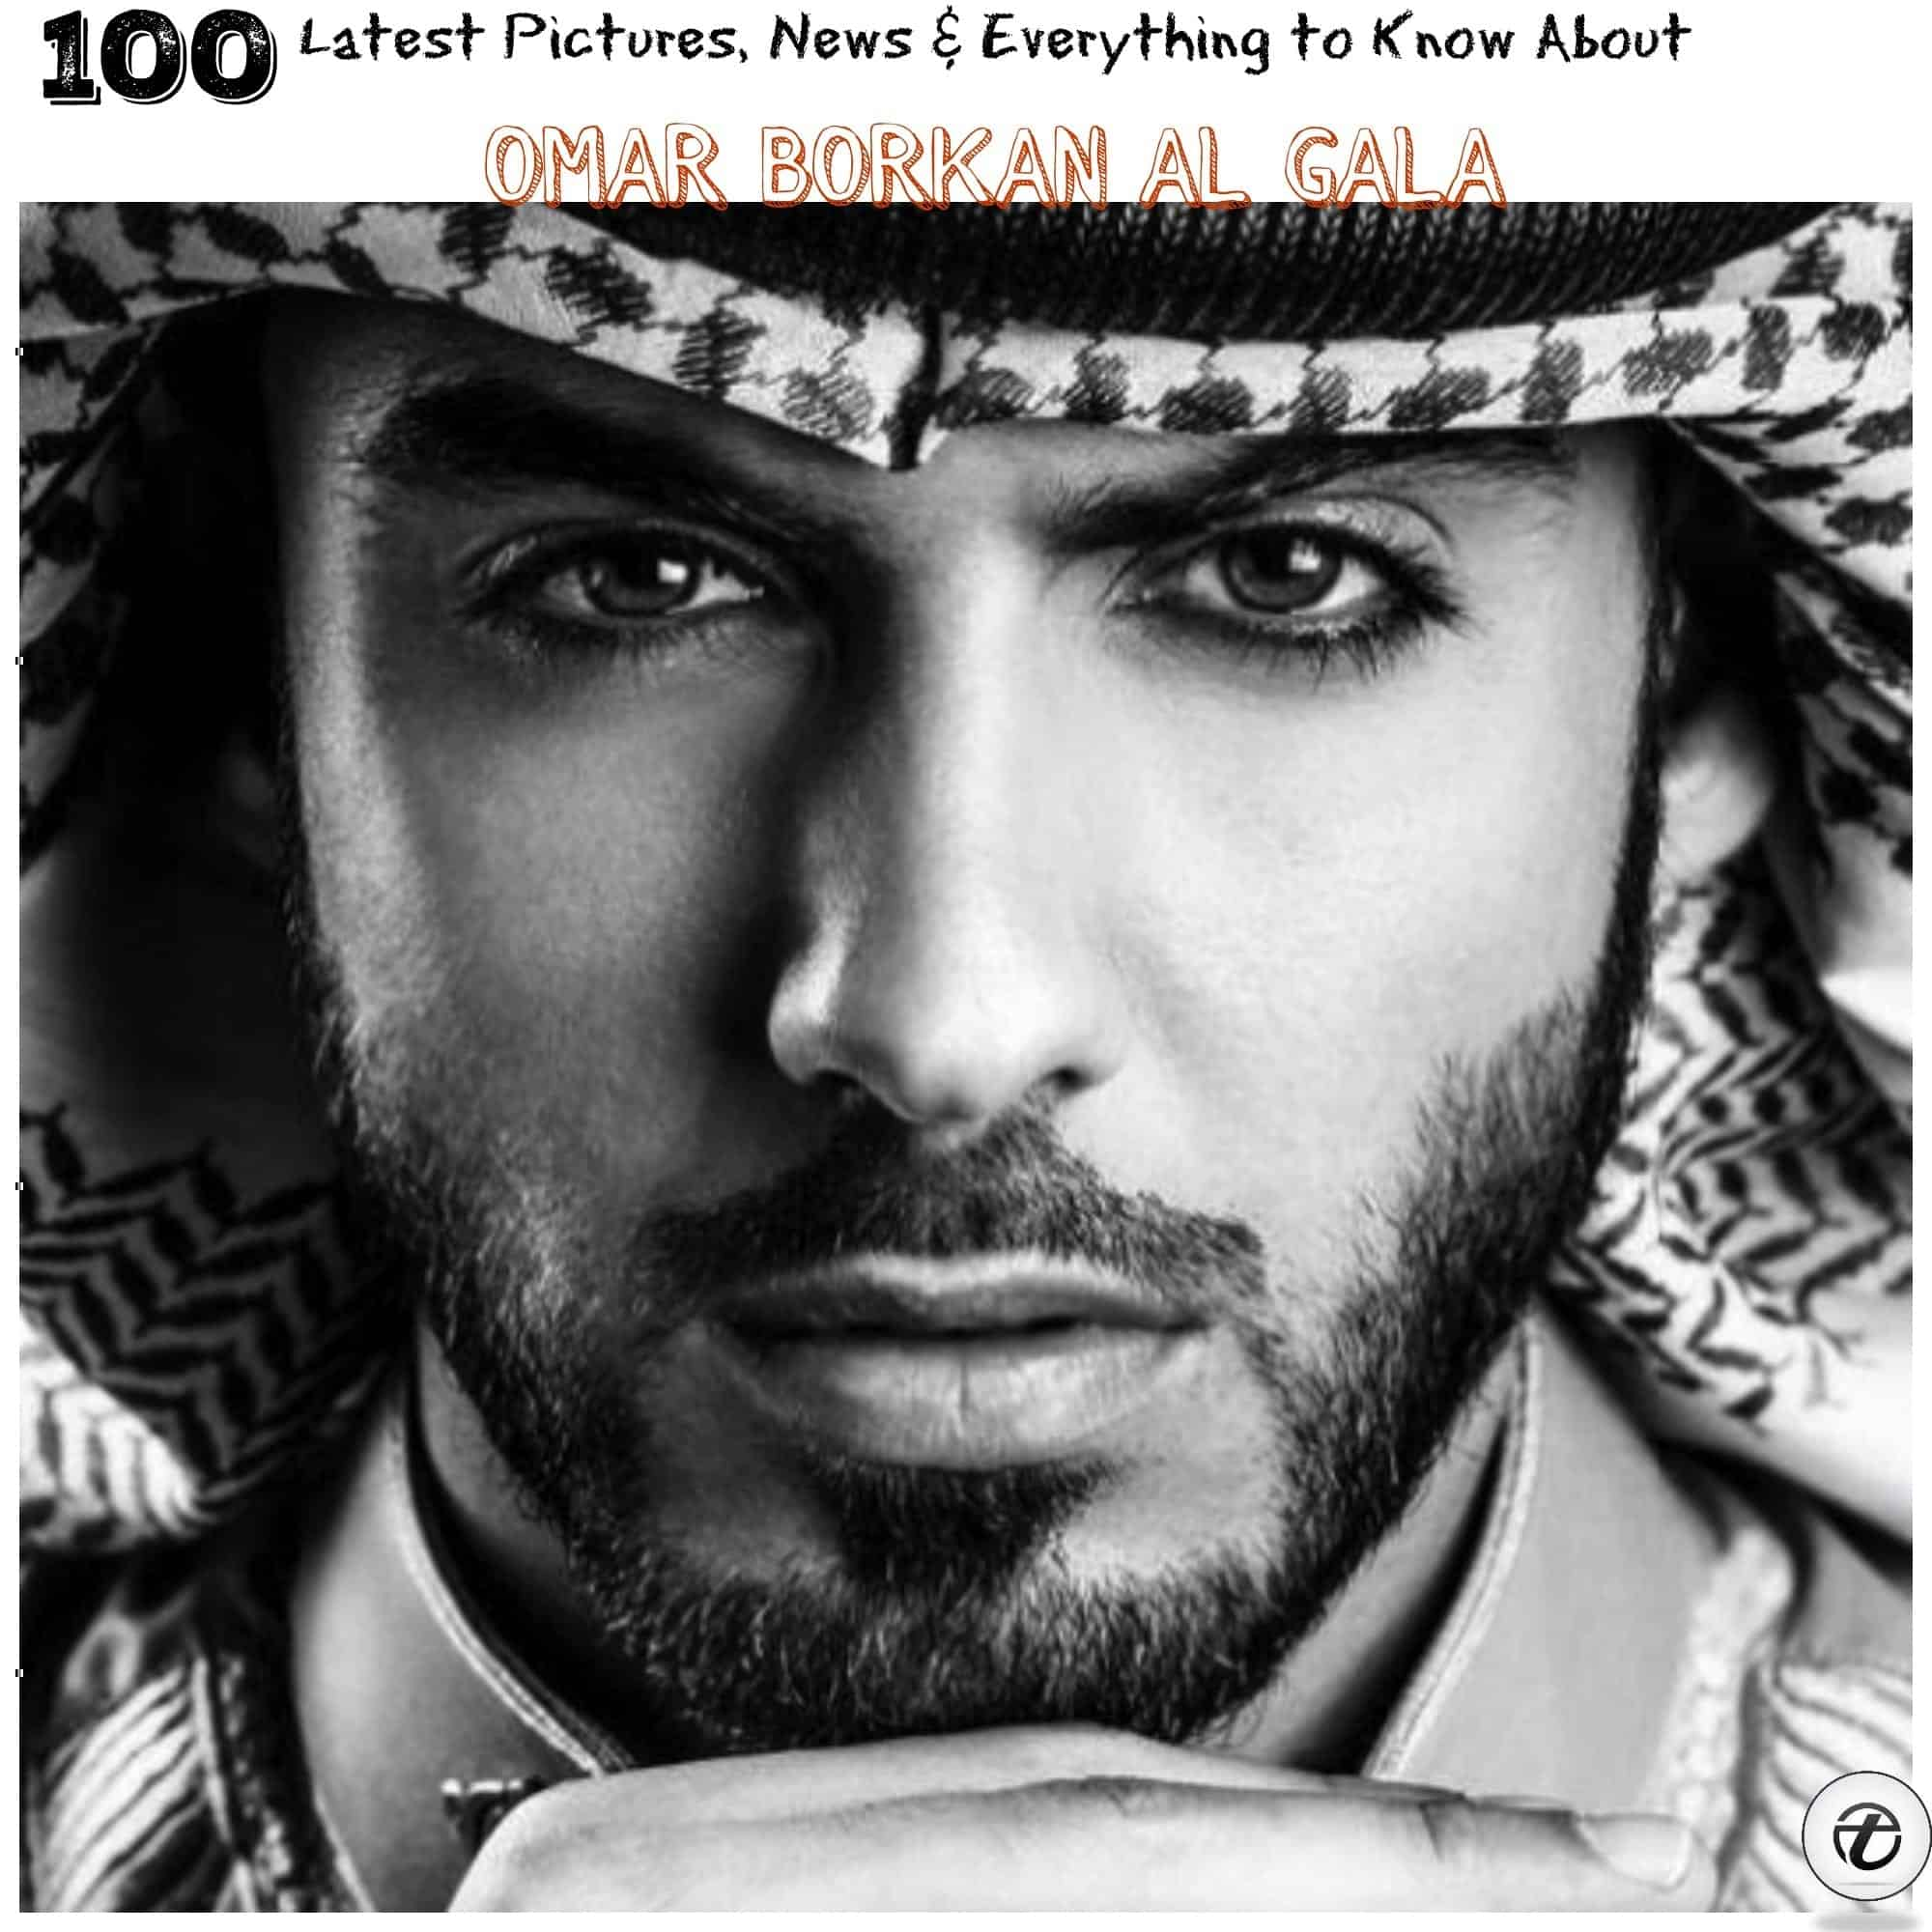 omar borkan's 100 latest, hottest and most stylish pictures